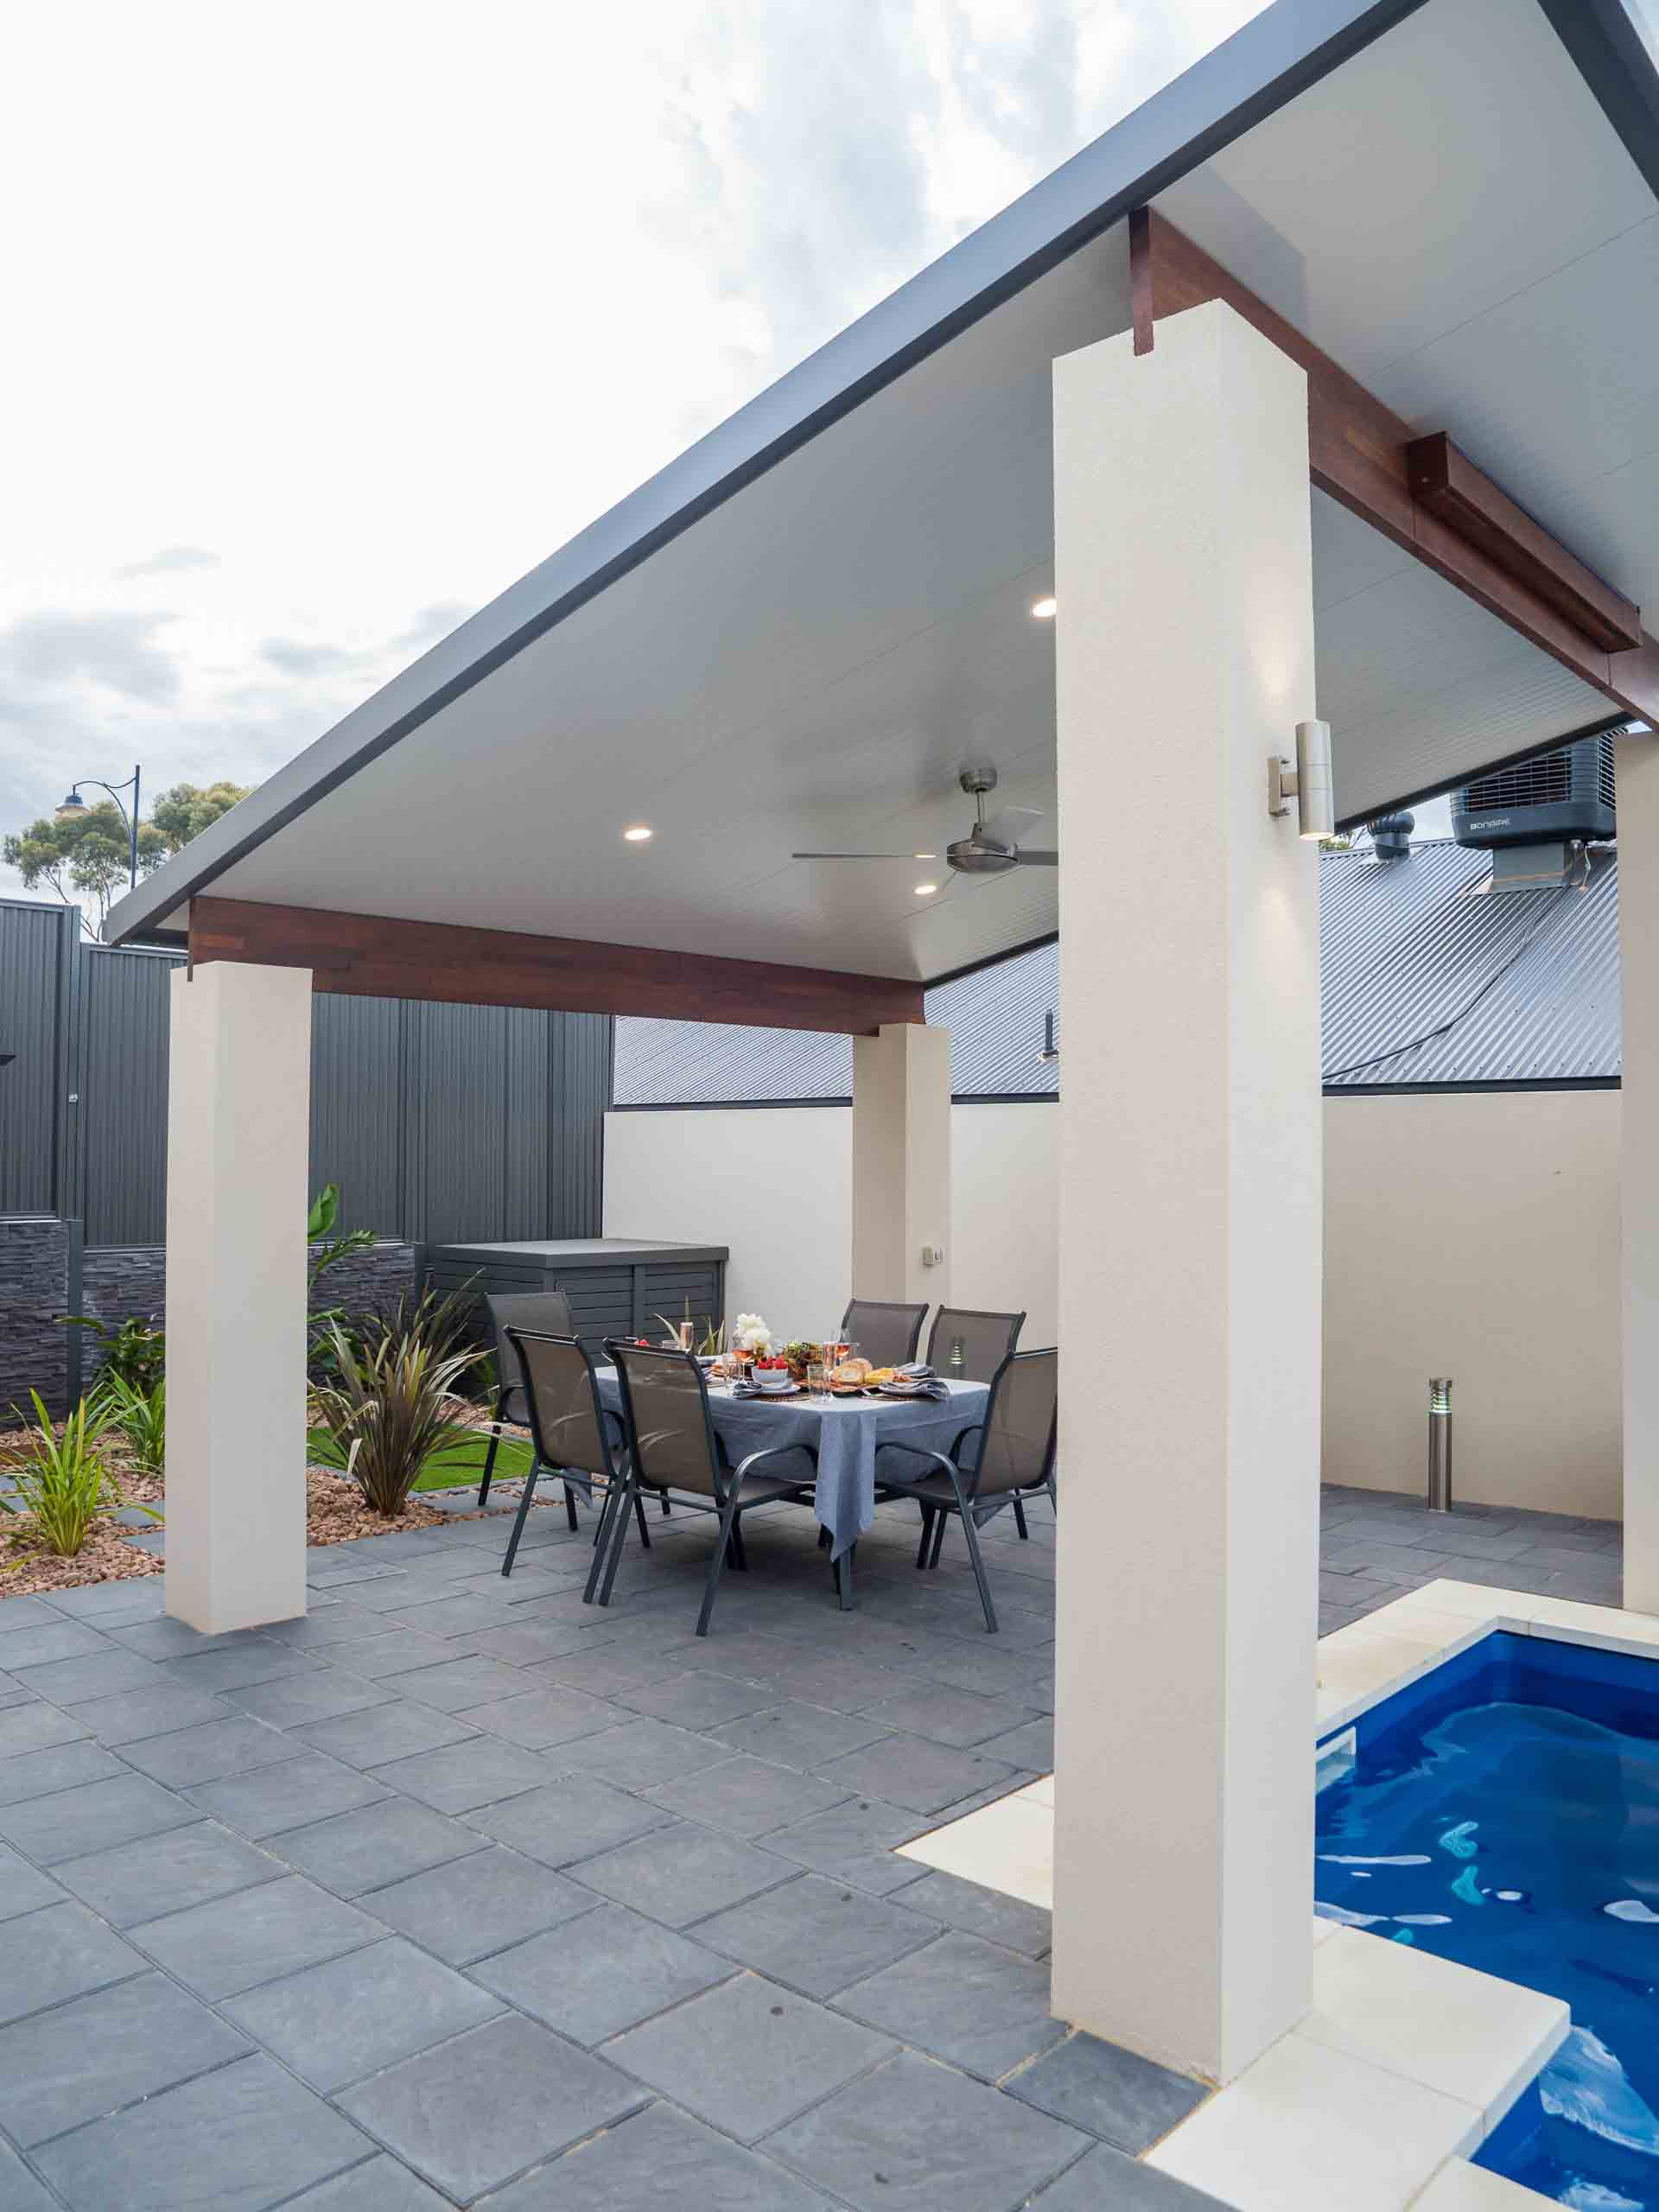 Patios, Pergolas & Verandahs | Australian Outdoor Living on Aust Outdoor Living id=41168